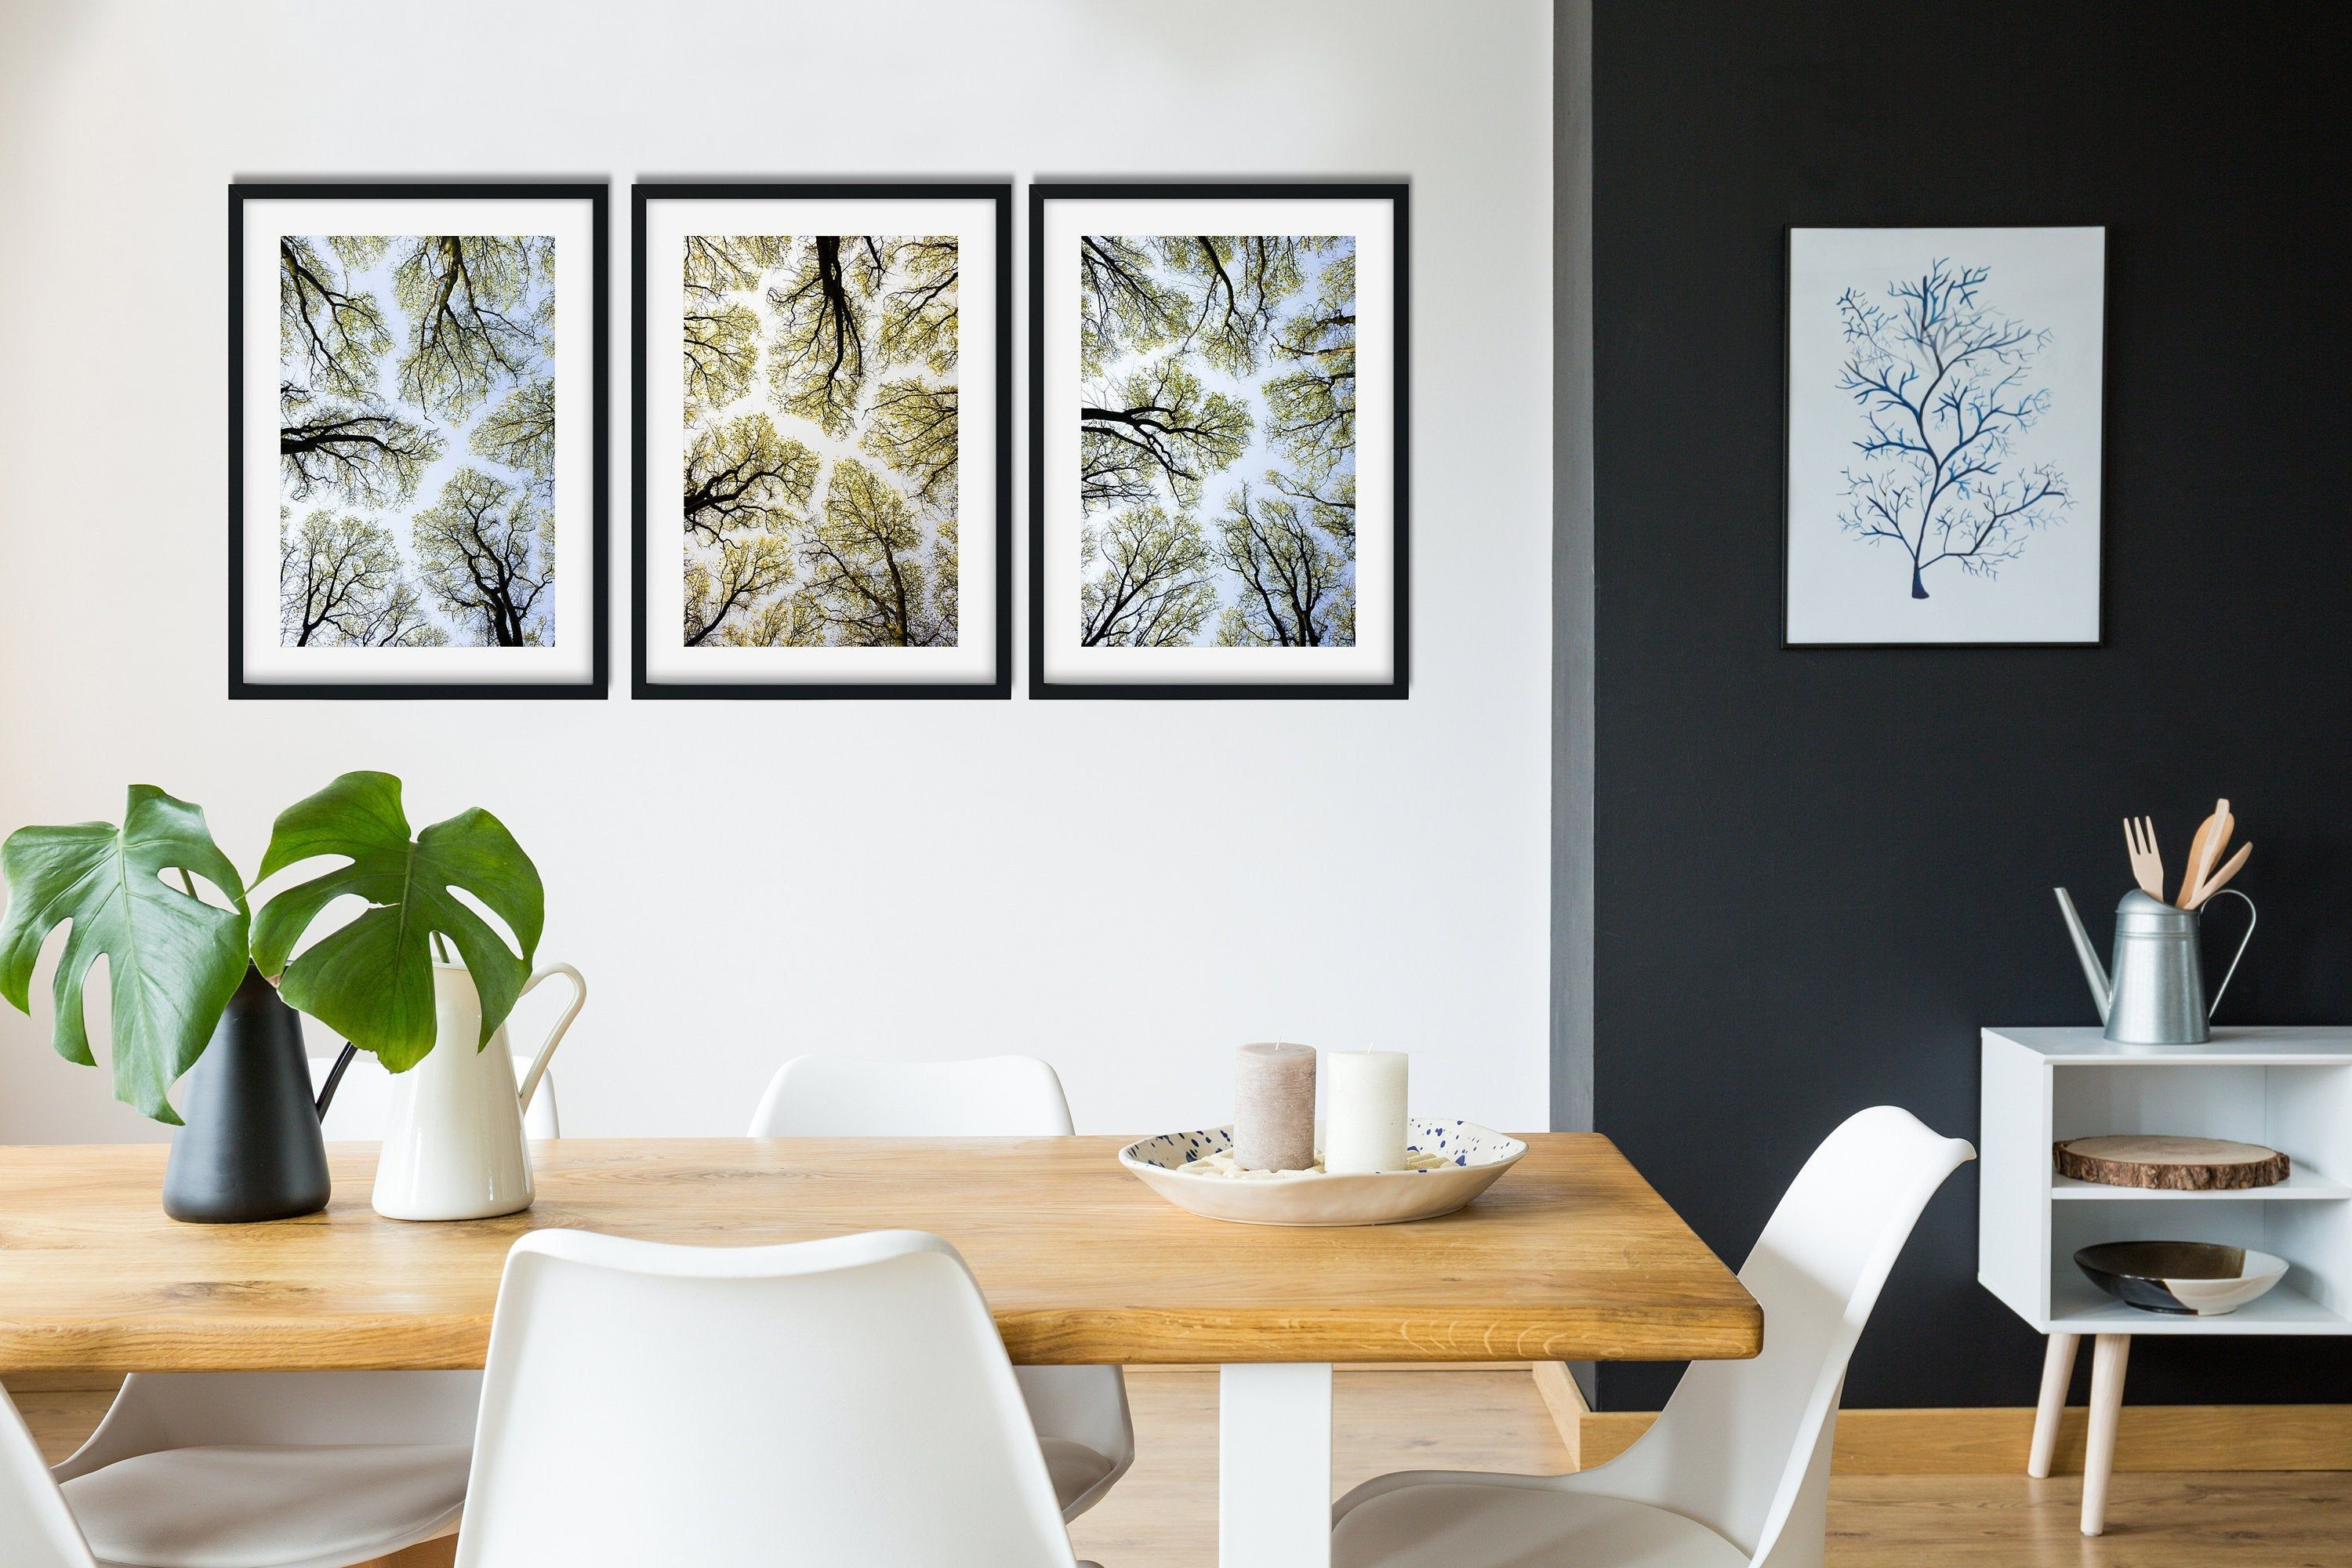 Set Of 3 Fine Art Photography Prints High Up In The Etsy Fine Art Photography Print Triptych Wall Art Photography Print